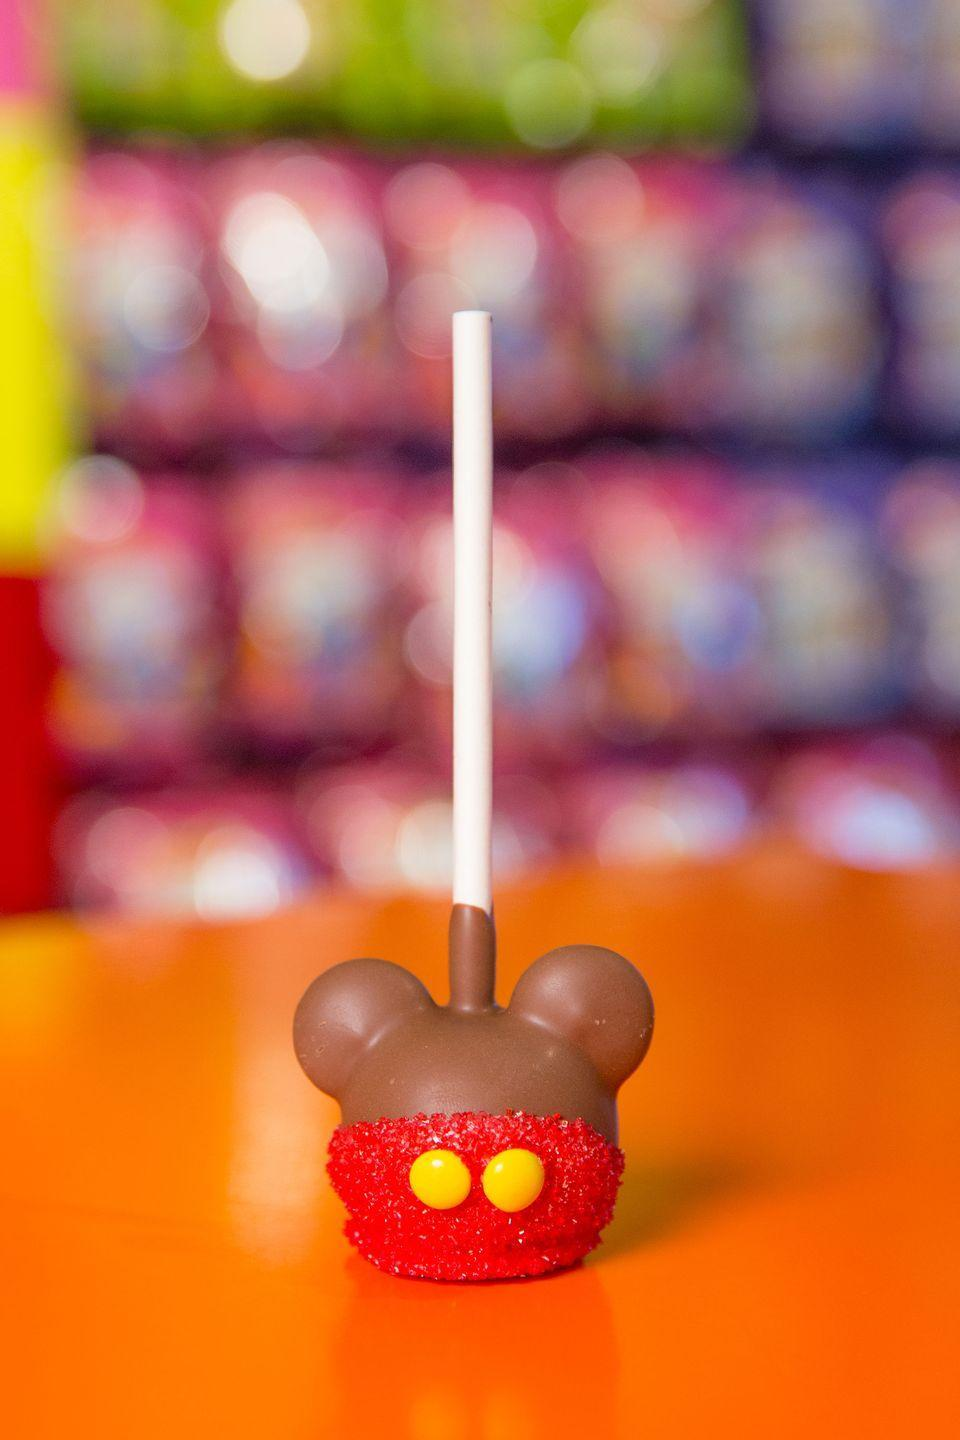 """<p>If you can dream it, Disney can most definitely turn it into a chocolate-coated caramel apple.</p><p>Get the recipe from <a href=""""https://www.delish.com/cooking/recipe-ideas/a36757991/disney-mickeys-caramel-apples/"""" rel=""""nofollow noopener"""" target=""""_blank"""" data-ylk=""""slk:Delish"""" class=""""link rapid-noclick-resp"""">Delish</a>.</p>"""